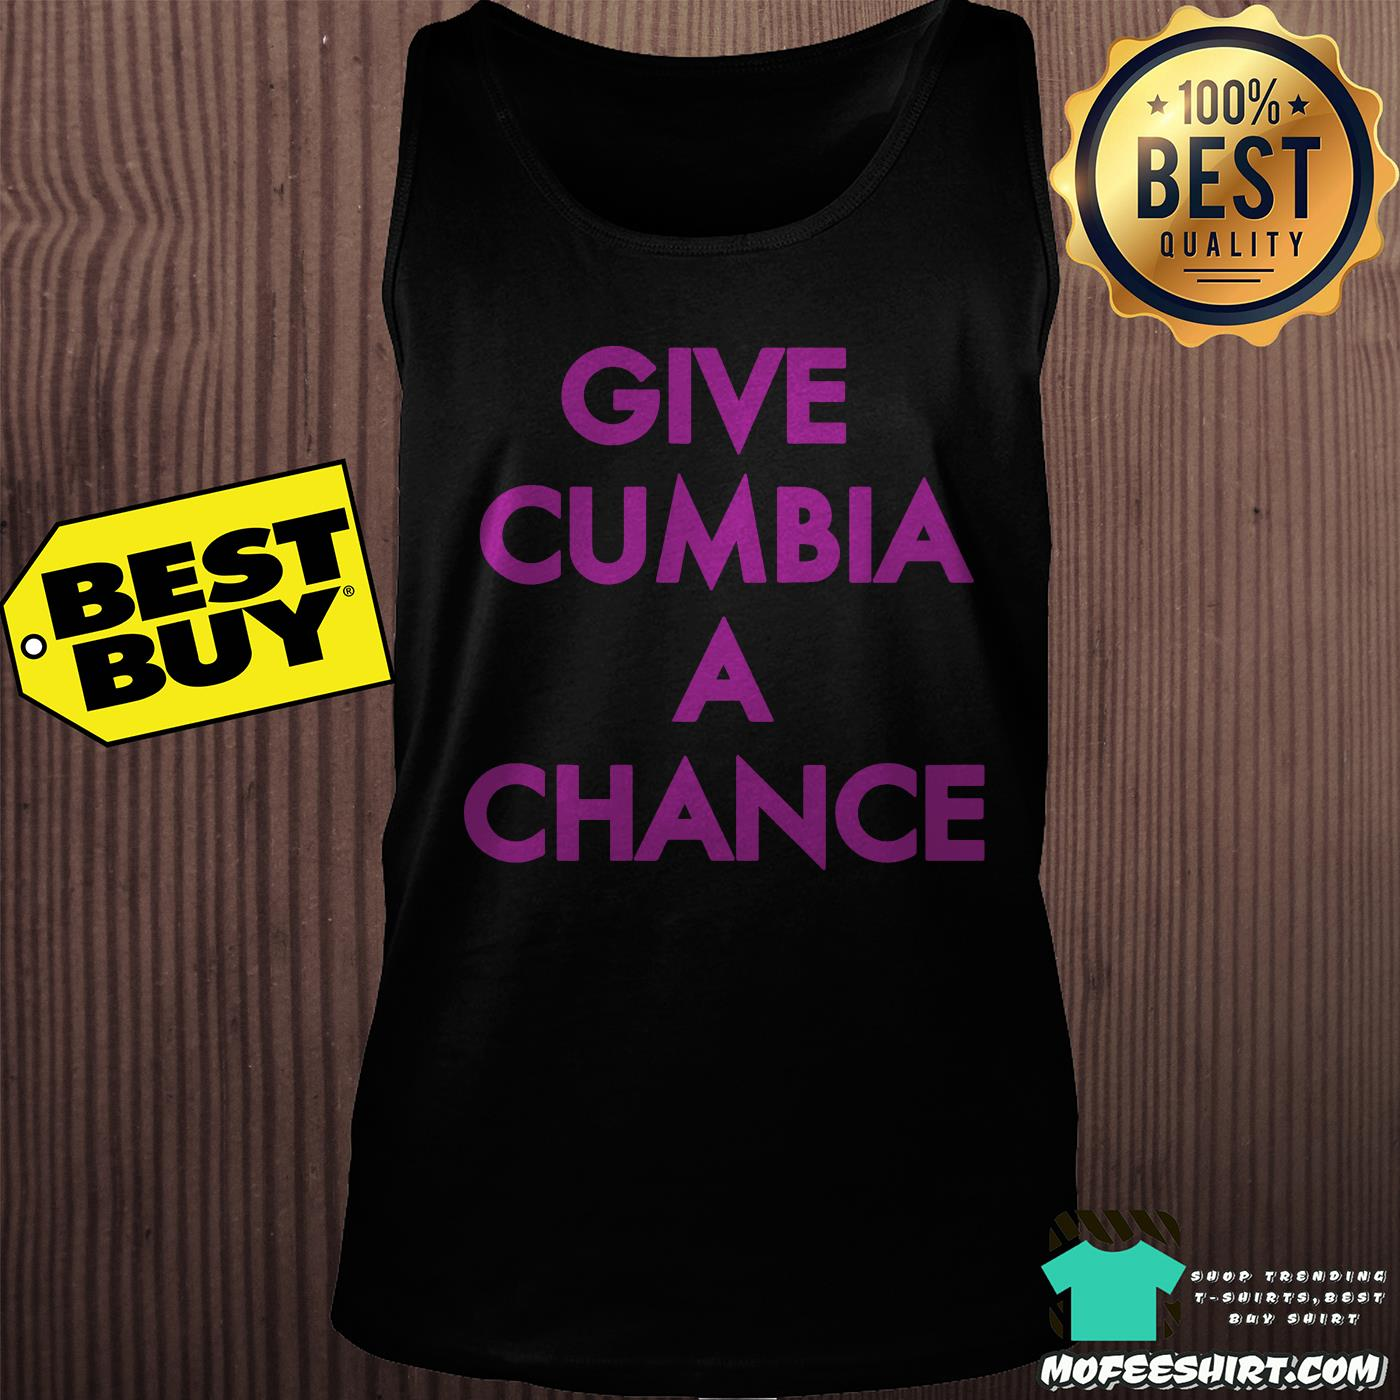 mexican institute of sound give cumbia a chance tank top - Mexican Institute of Sound Give Cumbia a chance shirt